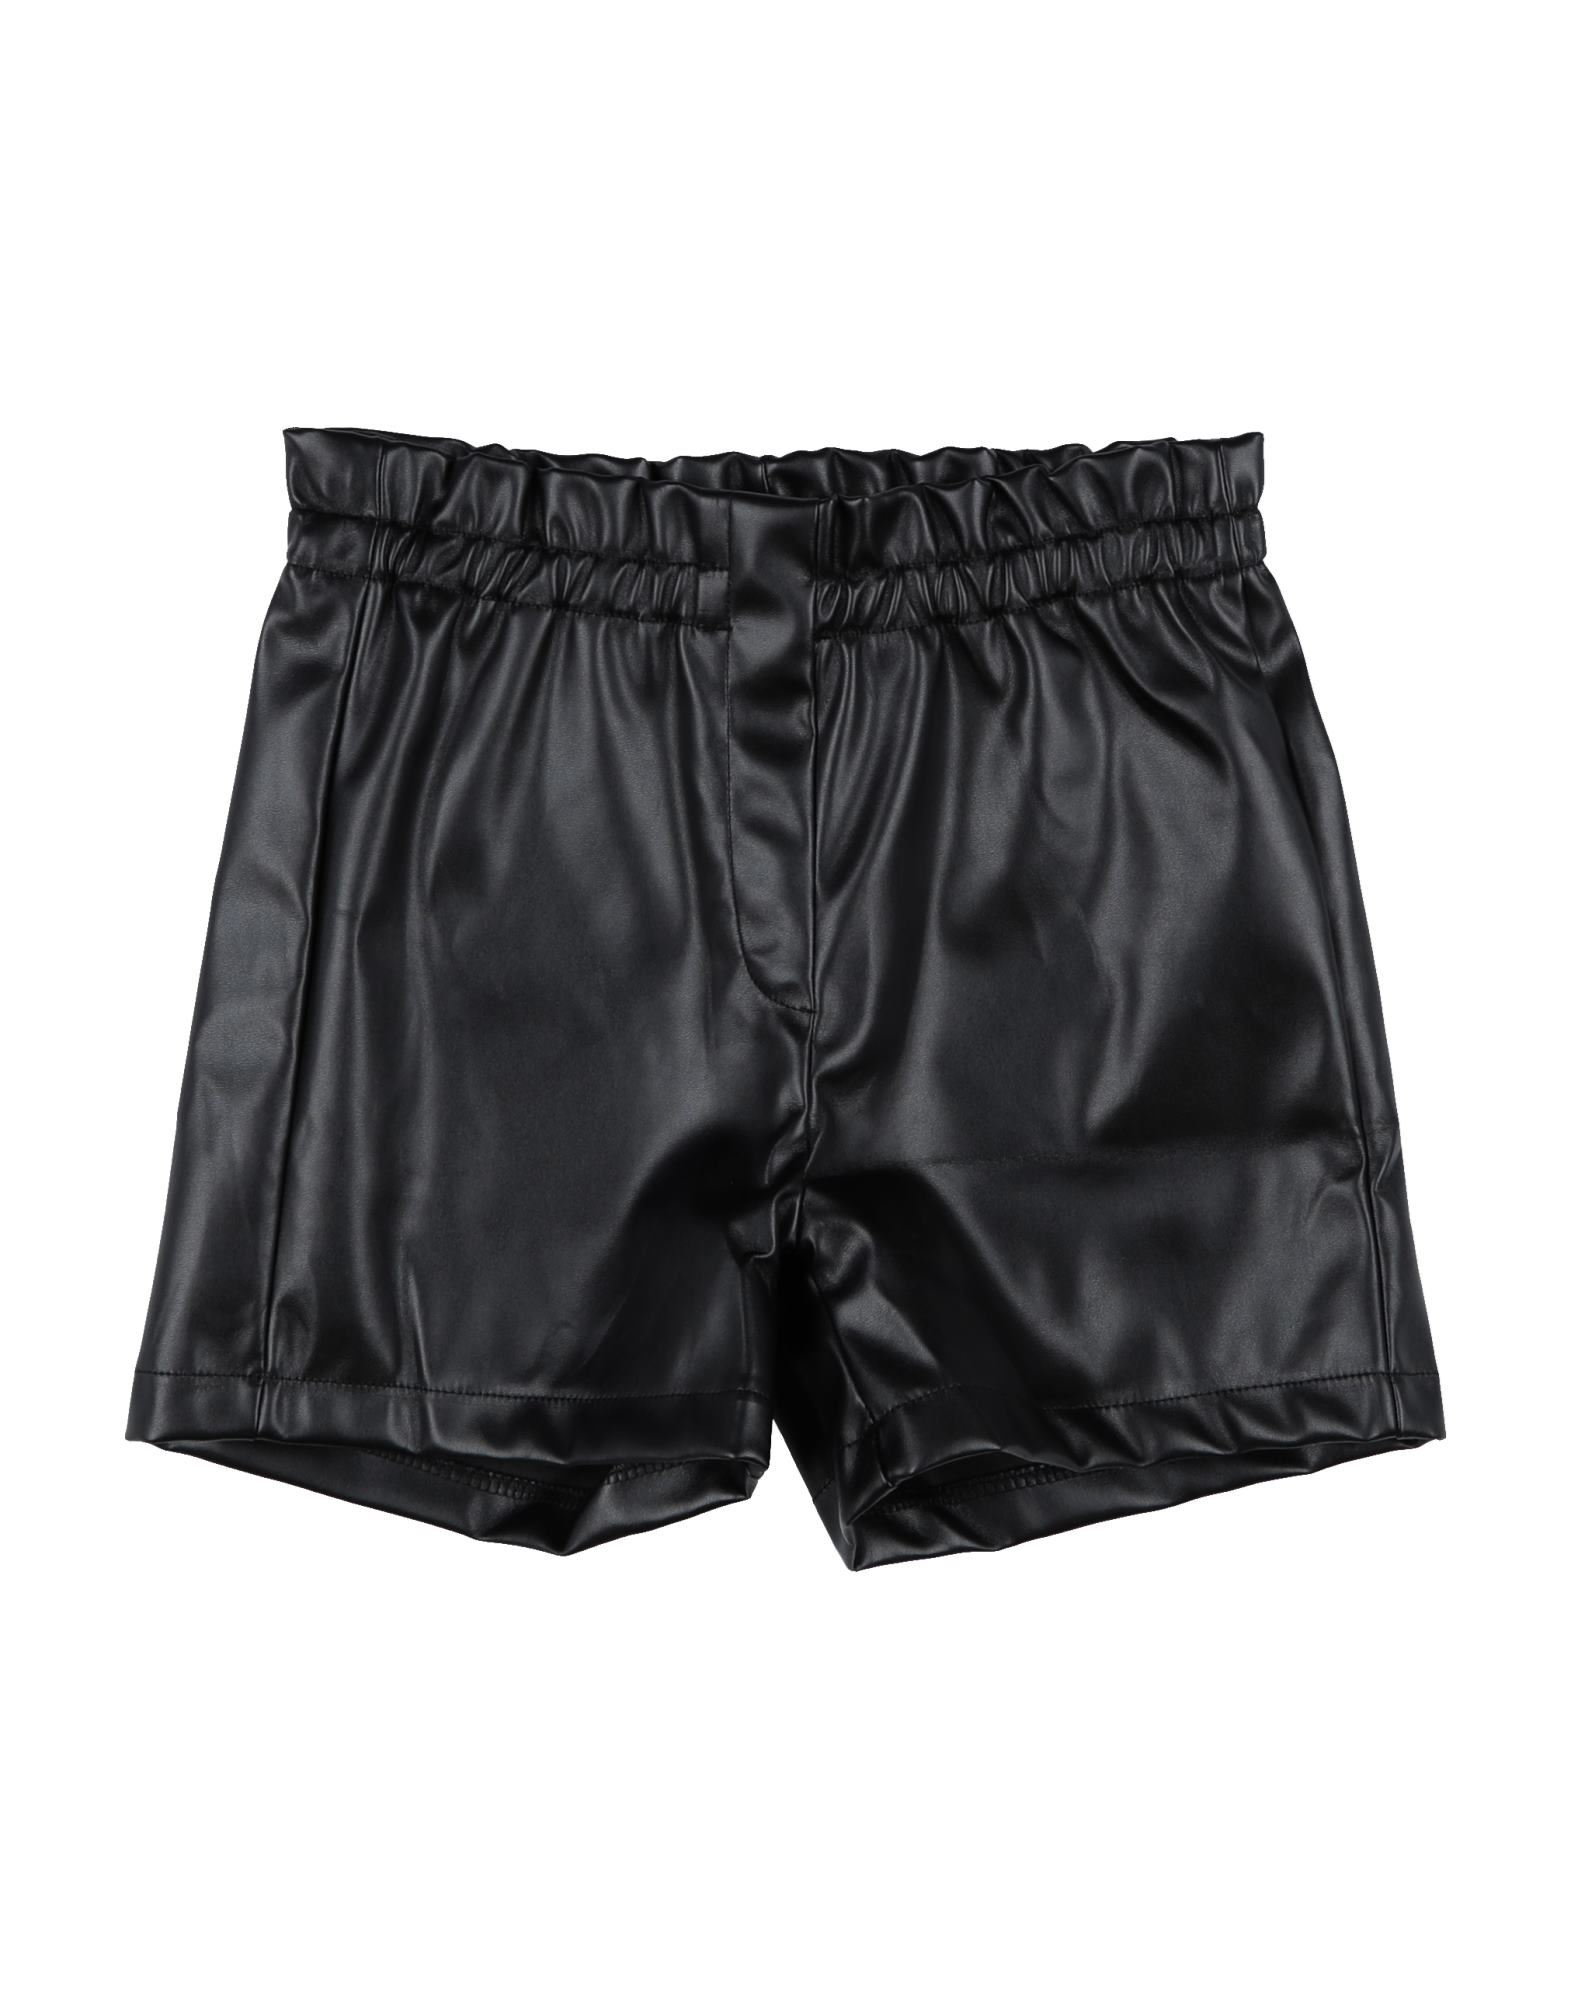 Byblos Kids' Shorts In Black